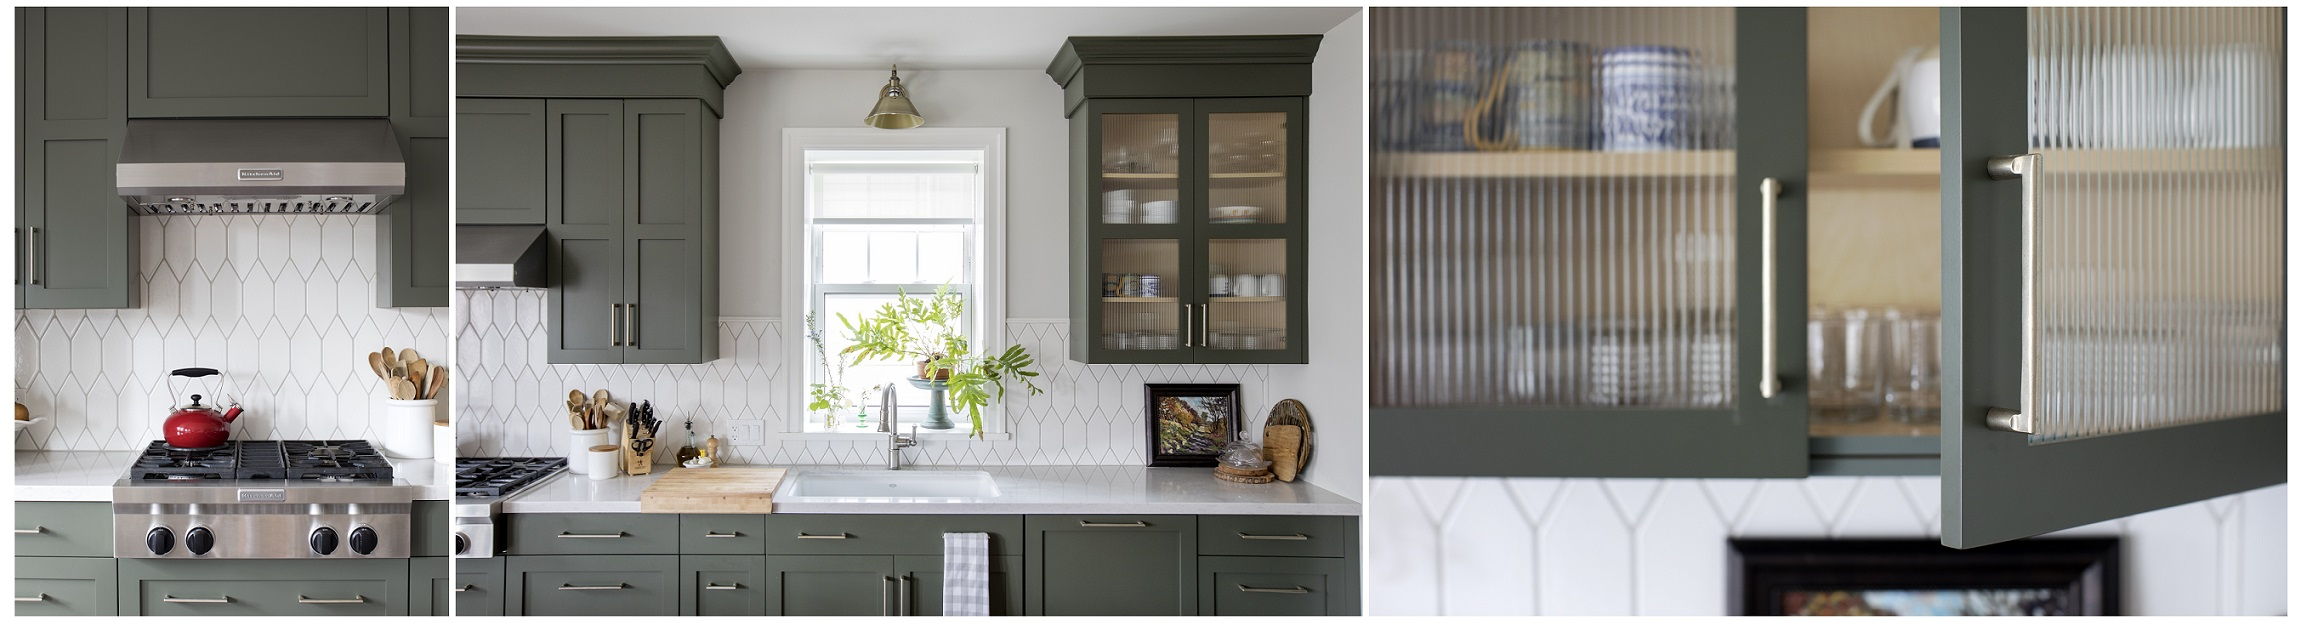 Merit Kitchens Interior Designers in Langley and Vancouver